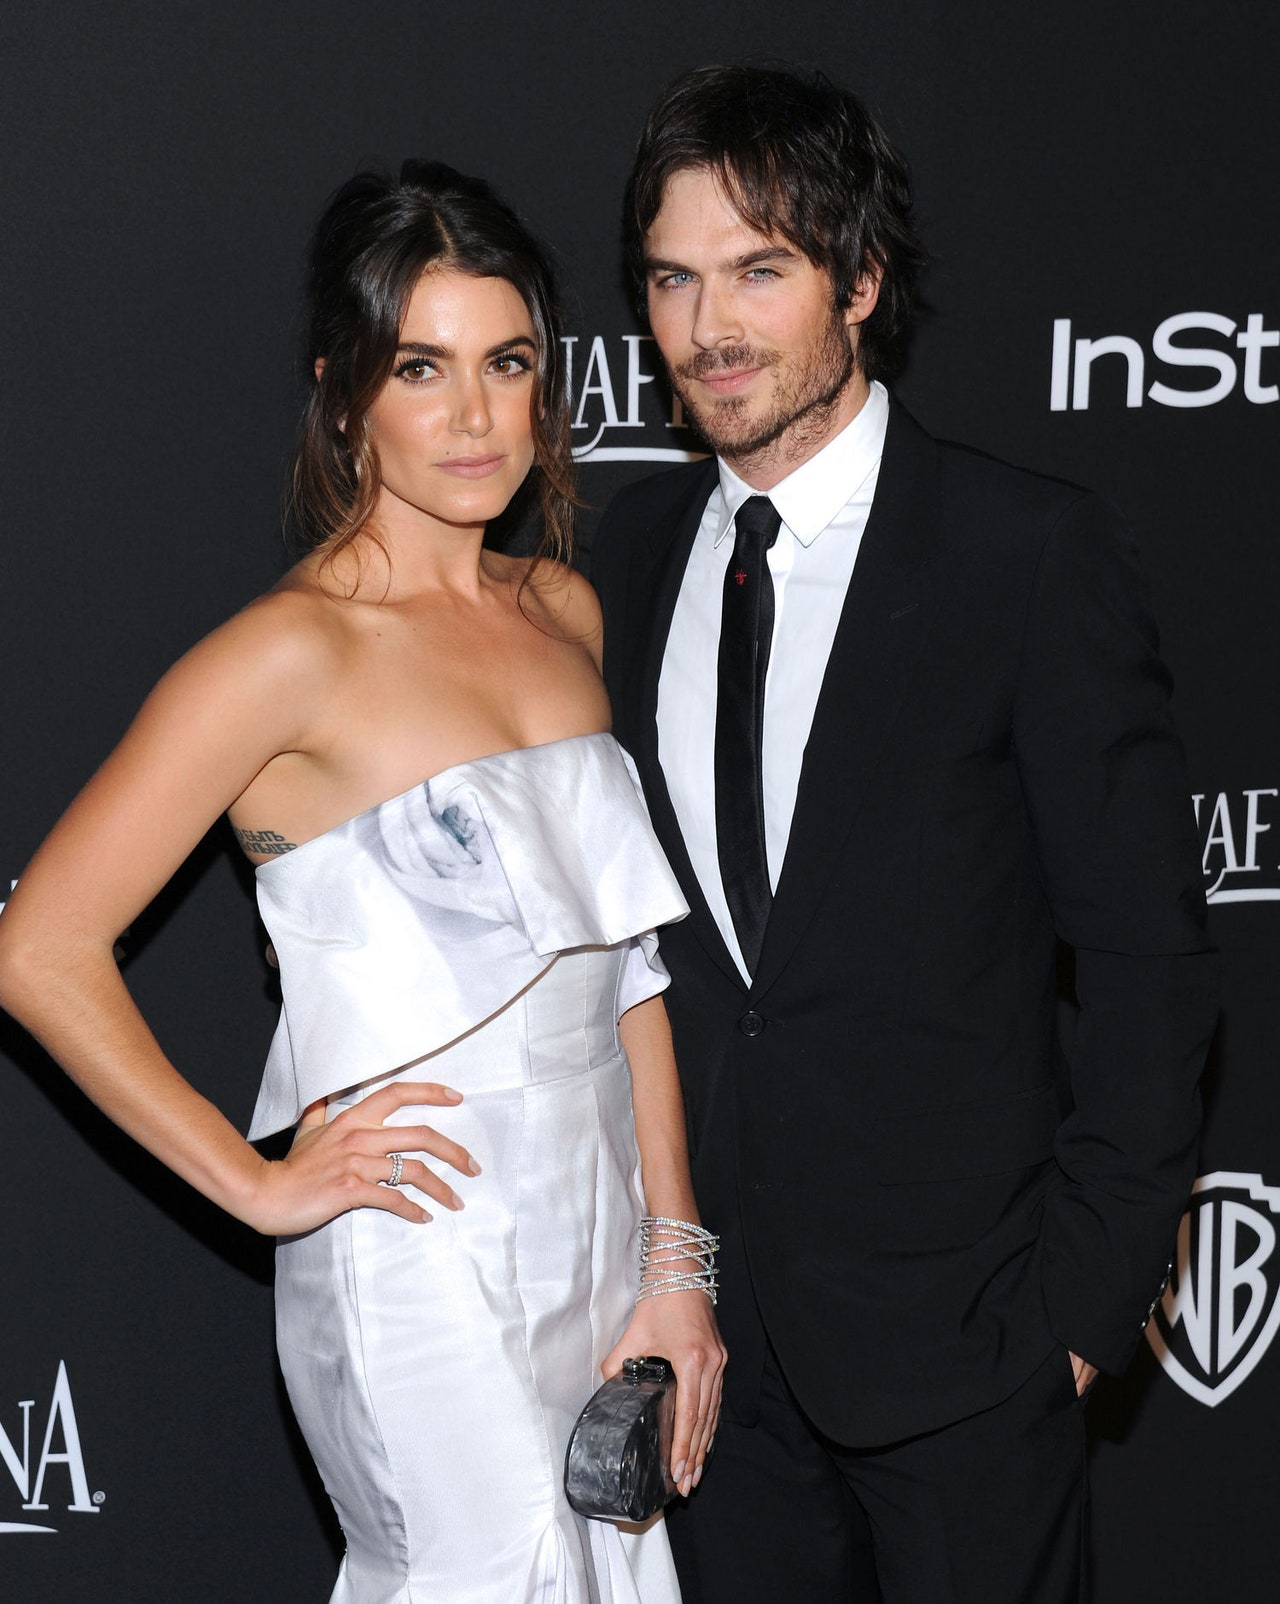 Nikki reed married